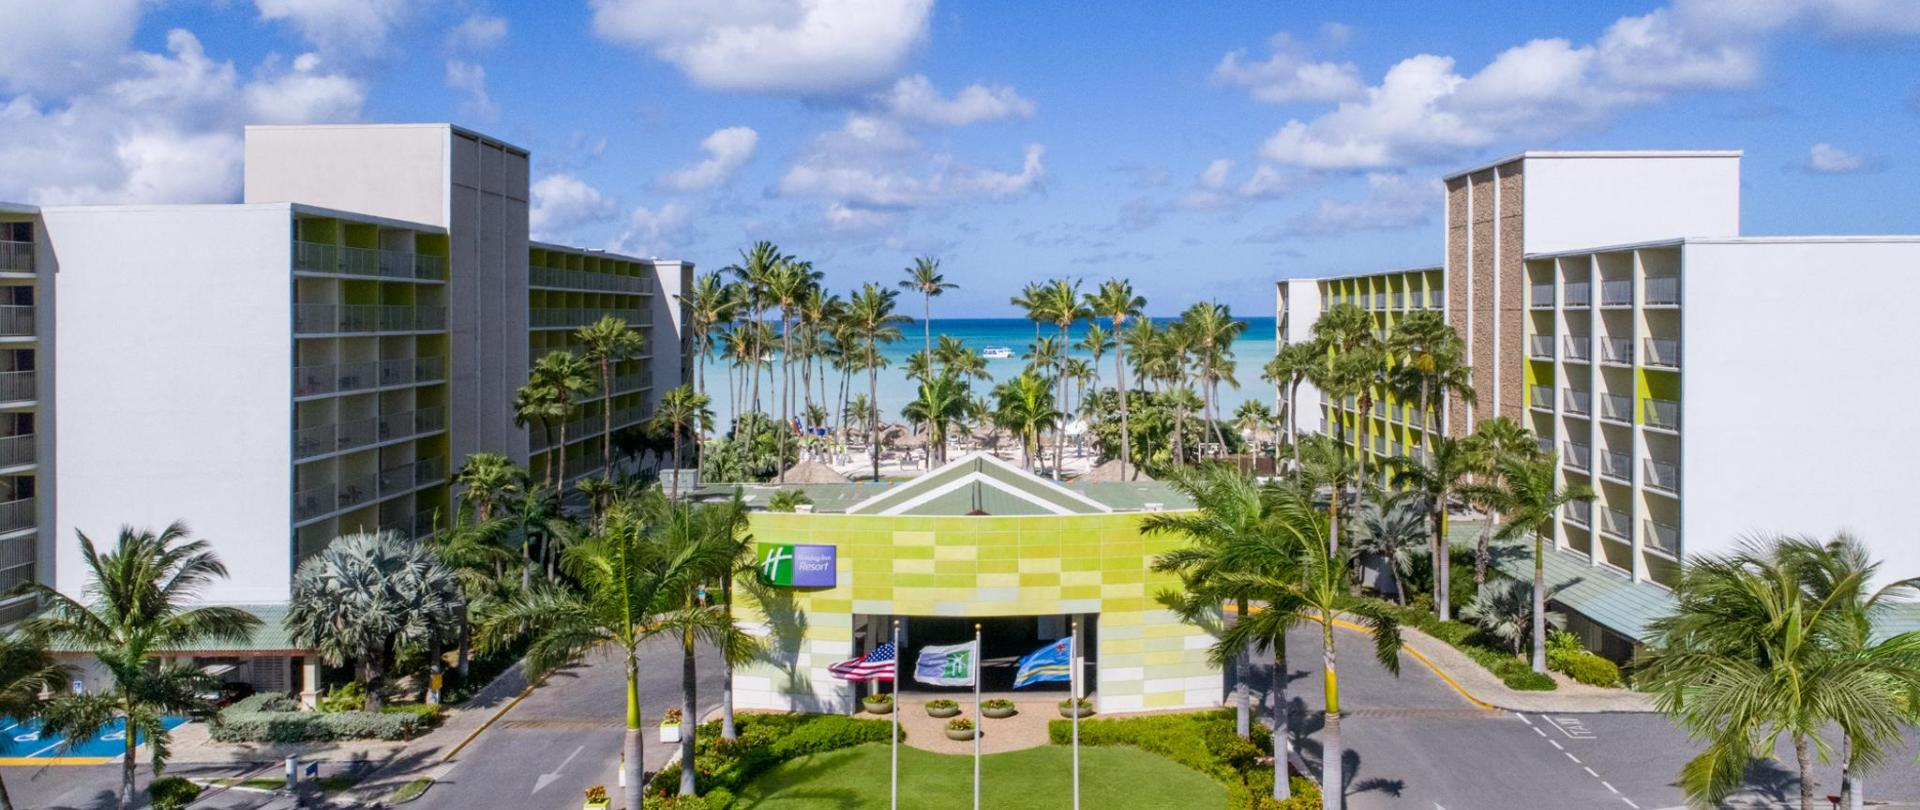 Holiday Inn Resort Aruba | Beach Resort & | Aruba on map of riu aruba, map of hotels on eagle beach aruba, map of aruba timeshares, map of aruba high-rise, map of palm beach in aruba the caribbean,